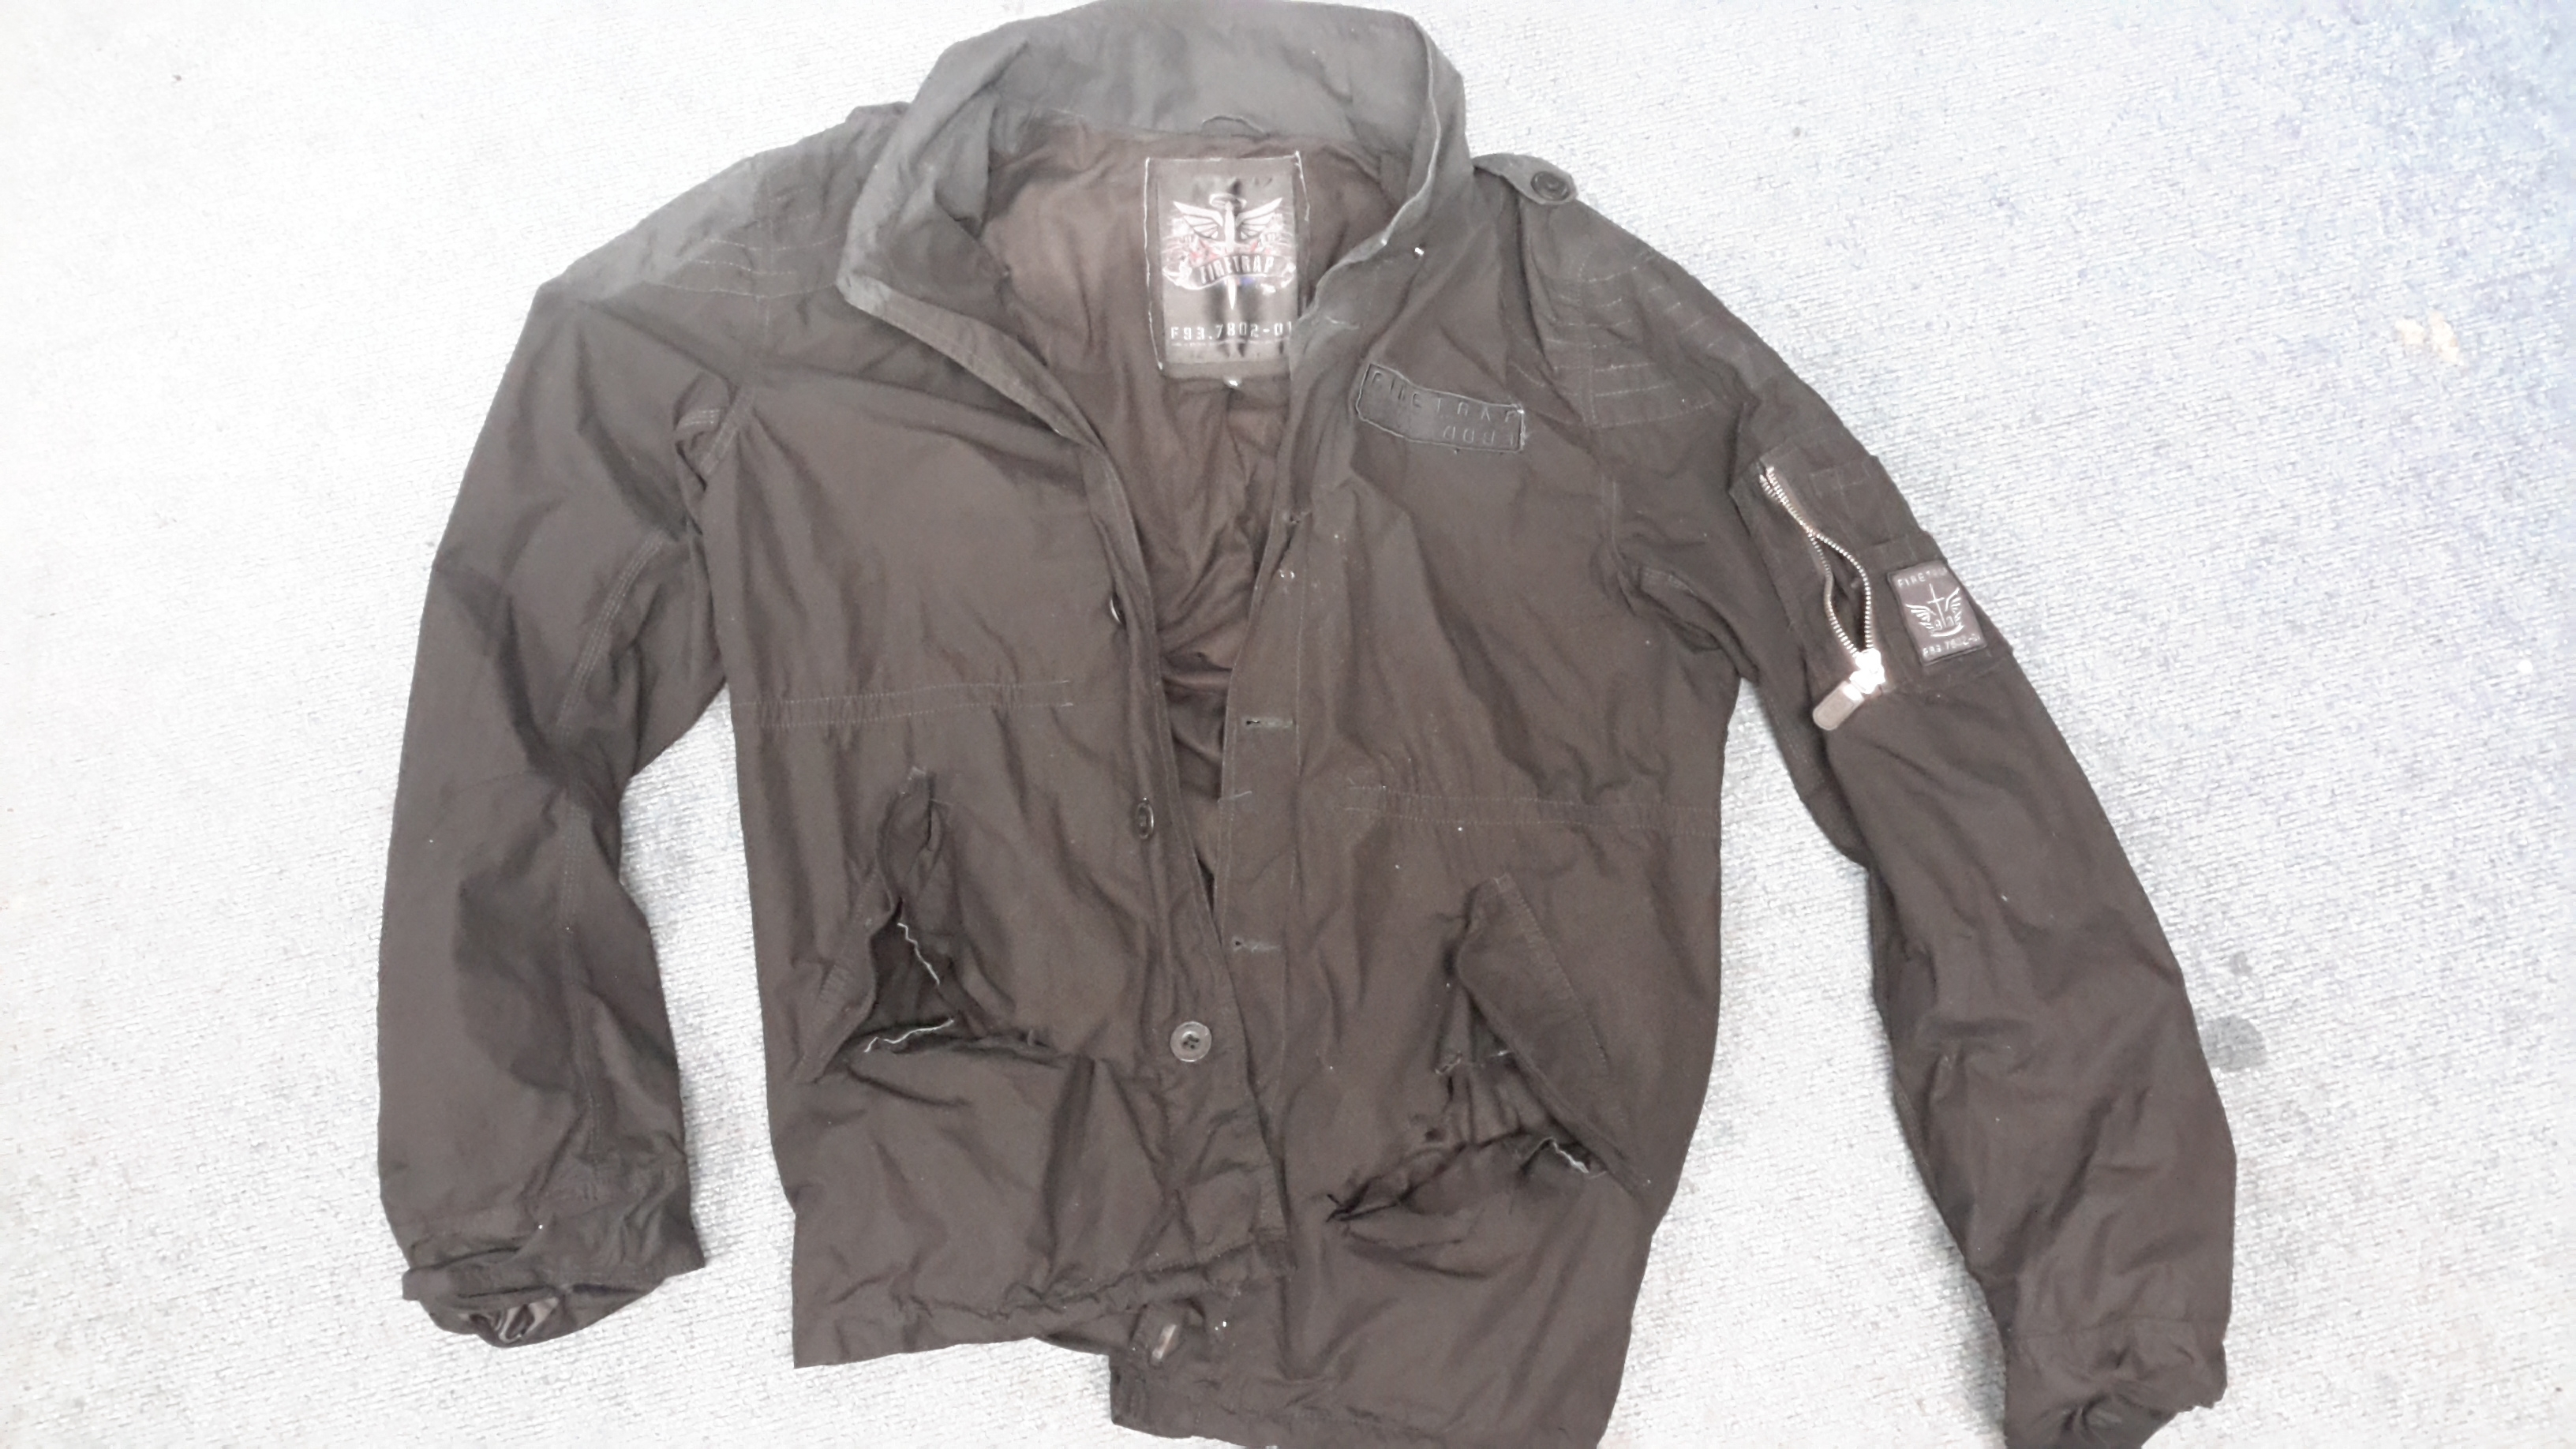 The jacket that was found.